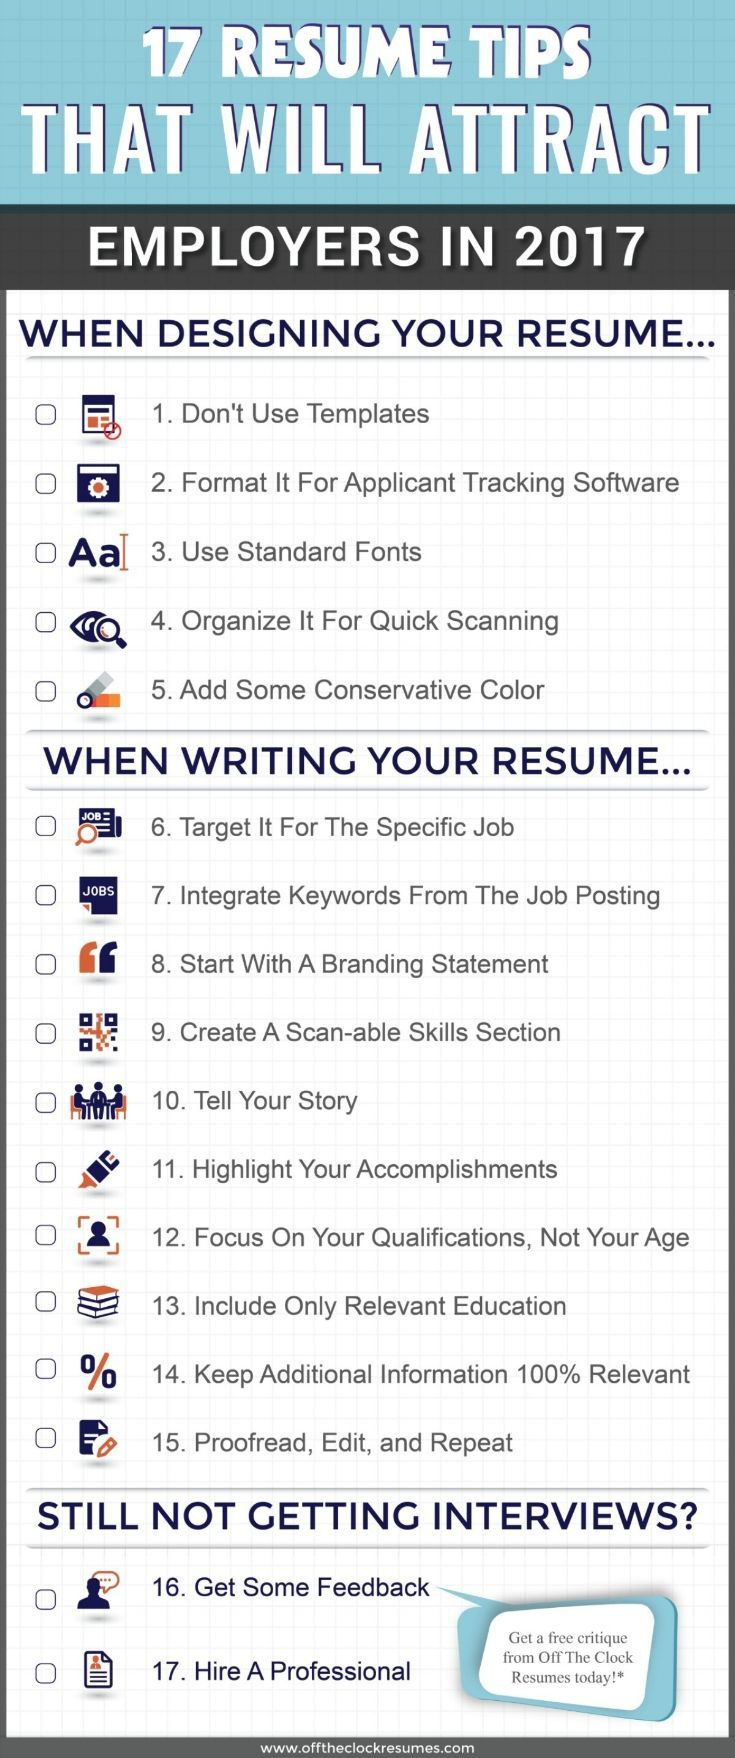 Resume Branding Statement Examples 18 Resume Tips That Will Get You Hired  Career Tips And Resumes .